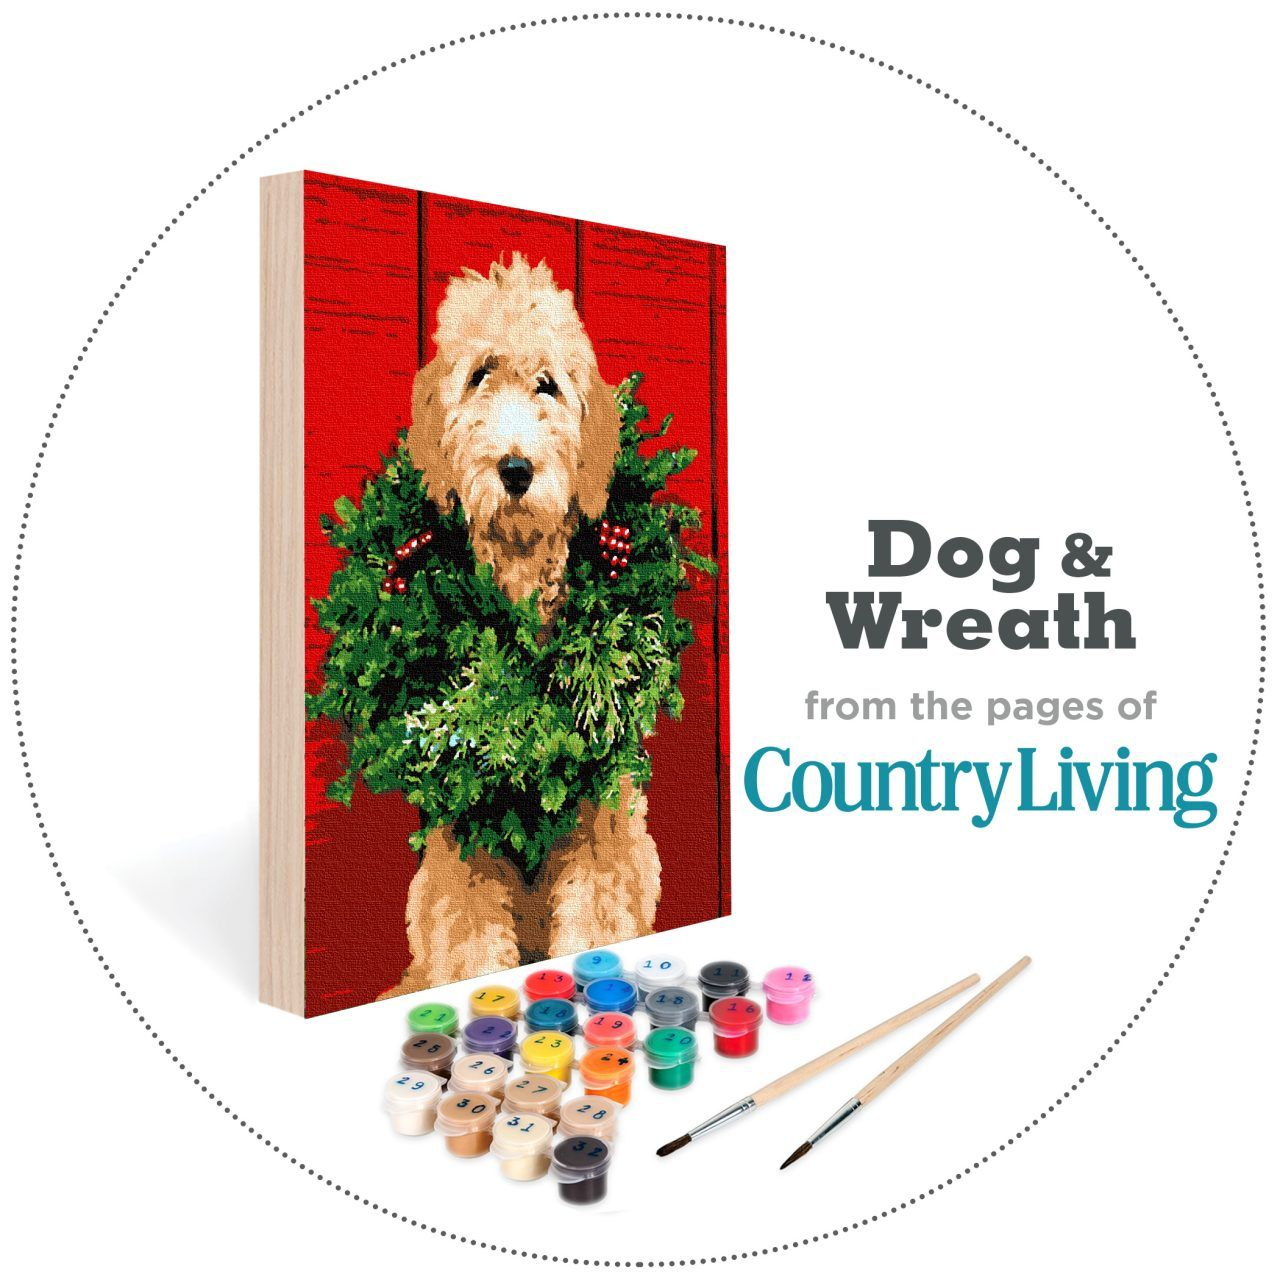 50 Best Gifts For Dog Lovers 2018 Unique Dog Owner Gift Ideas